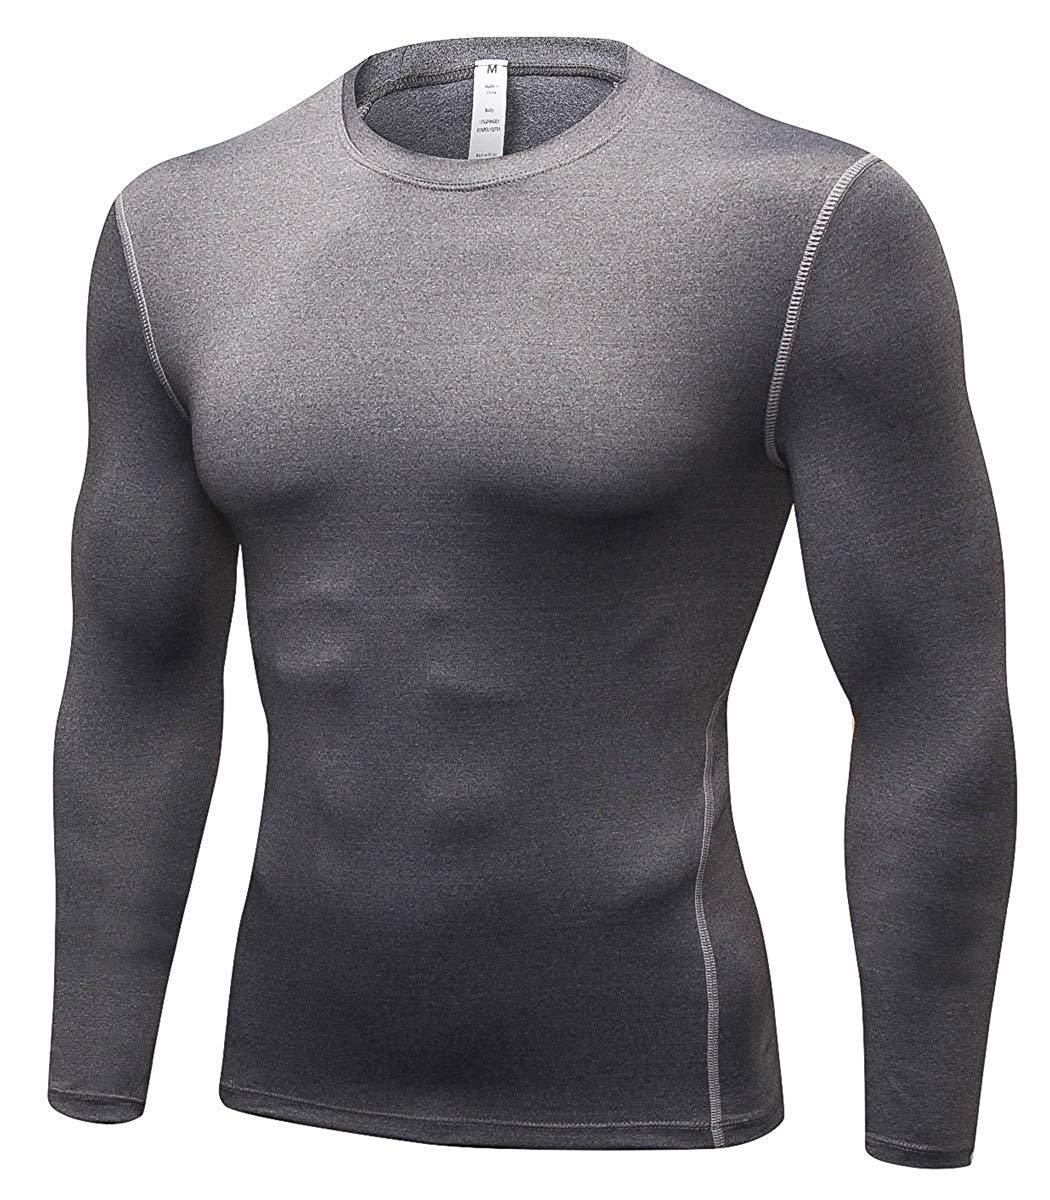 Men/'s Athletic Compression Top Workout Gym Running Long Sleeve T Shirt Quick-dry